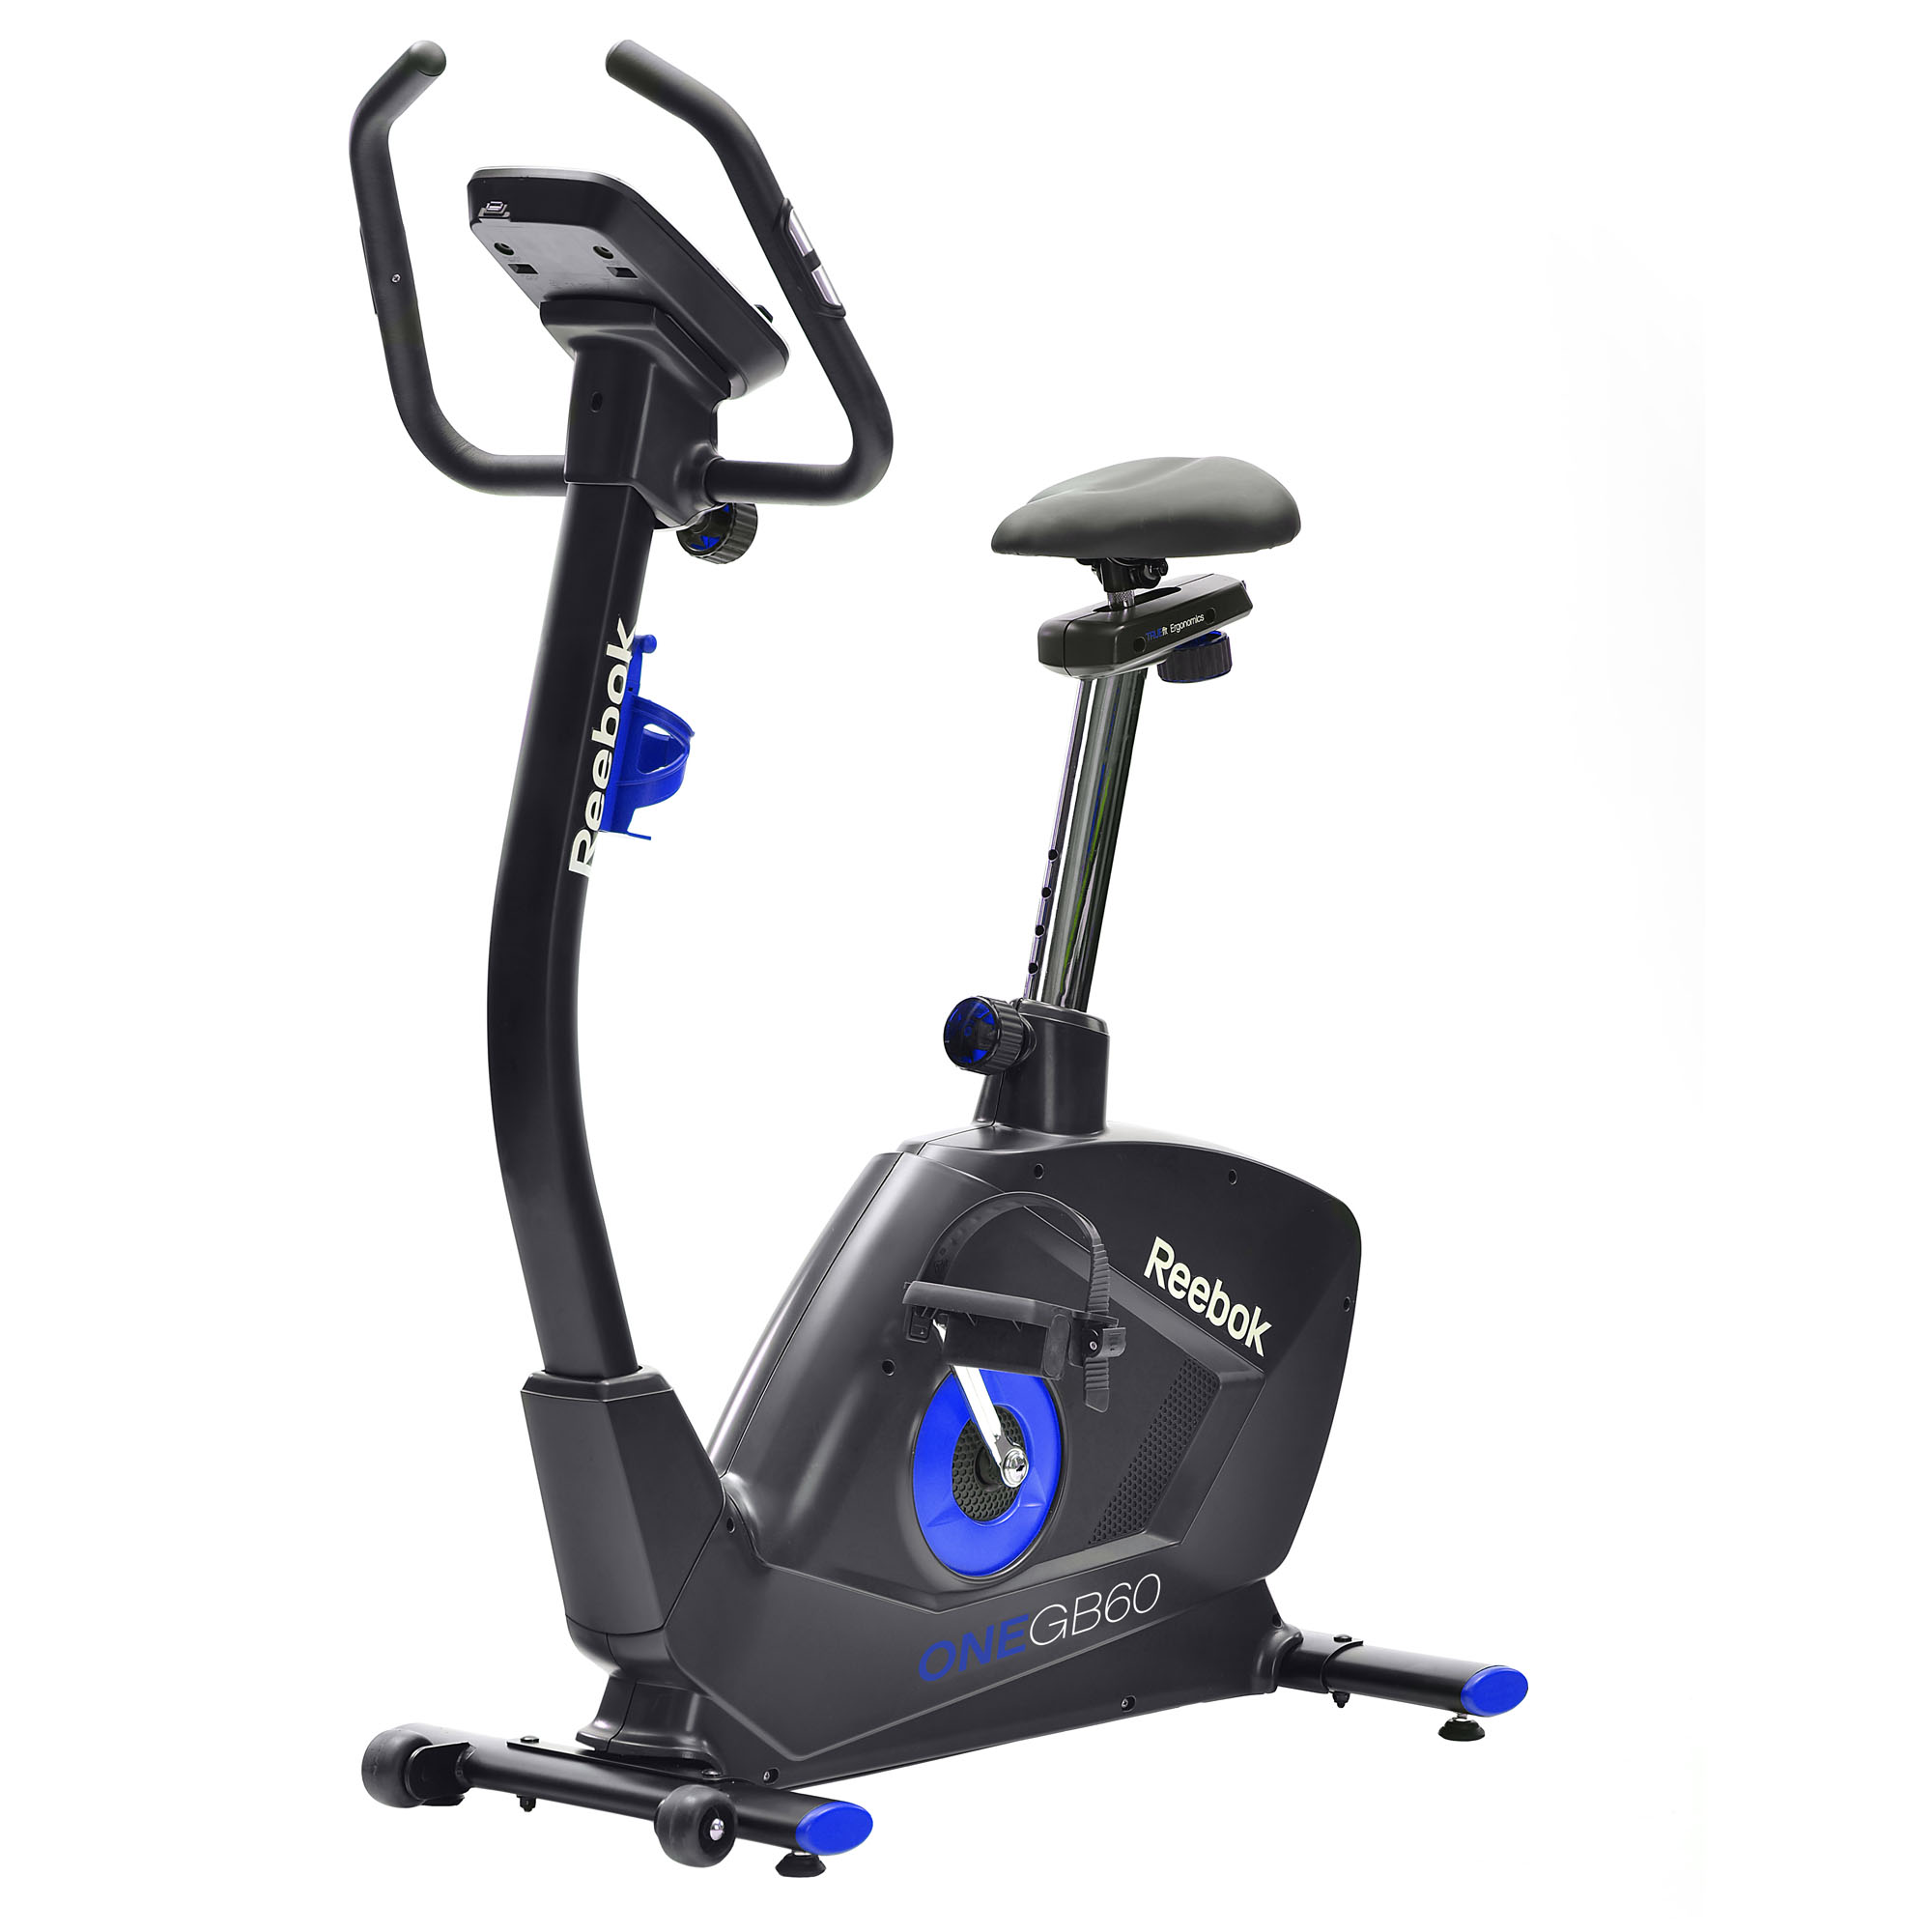 Reebok One GB60 Exercise Bike